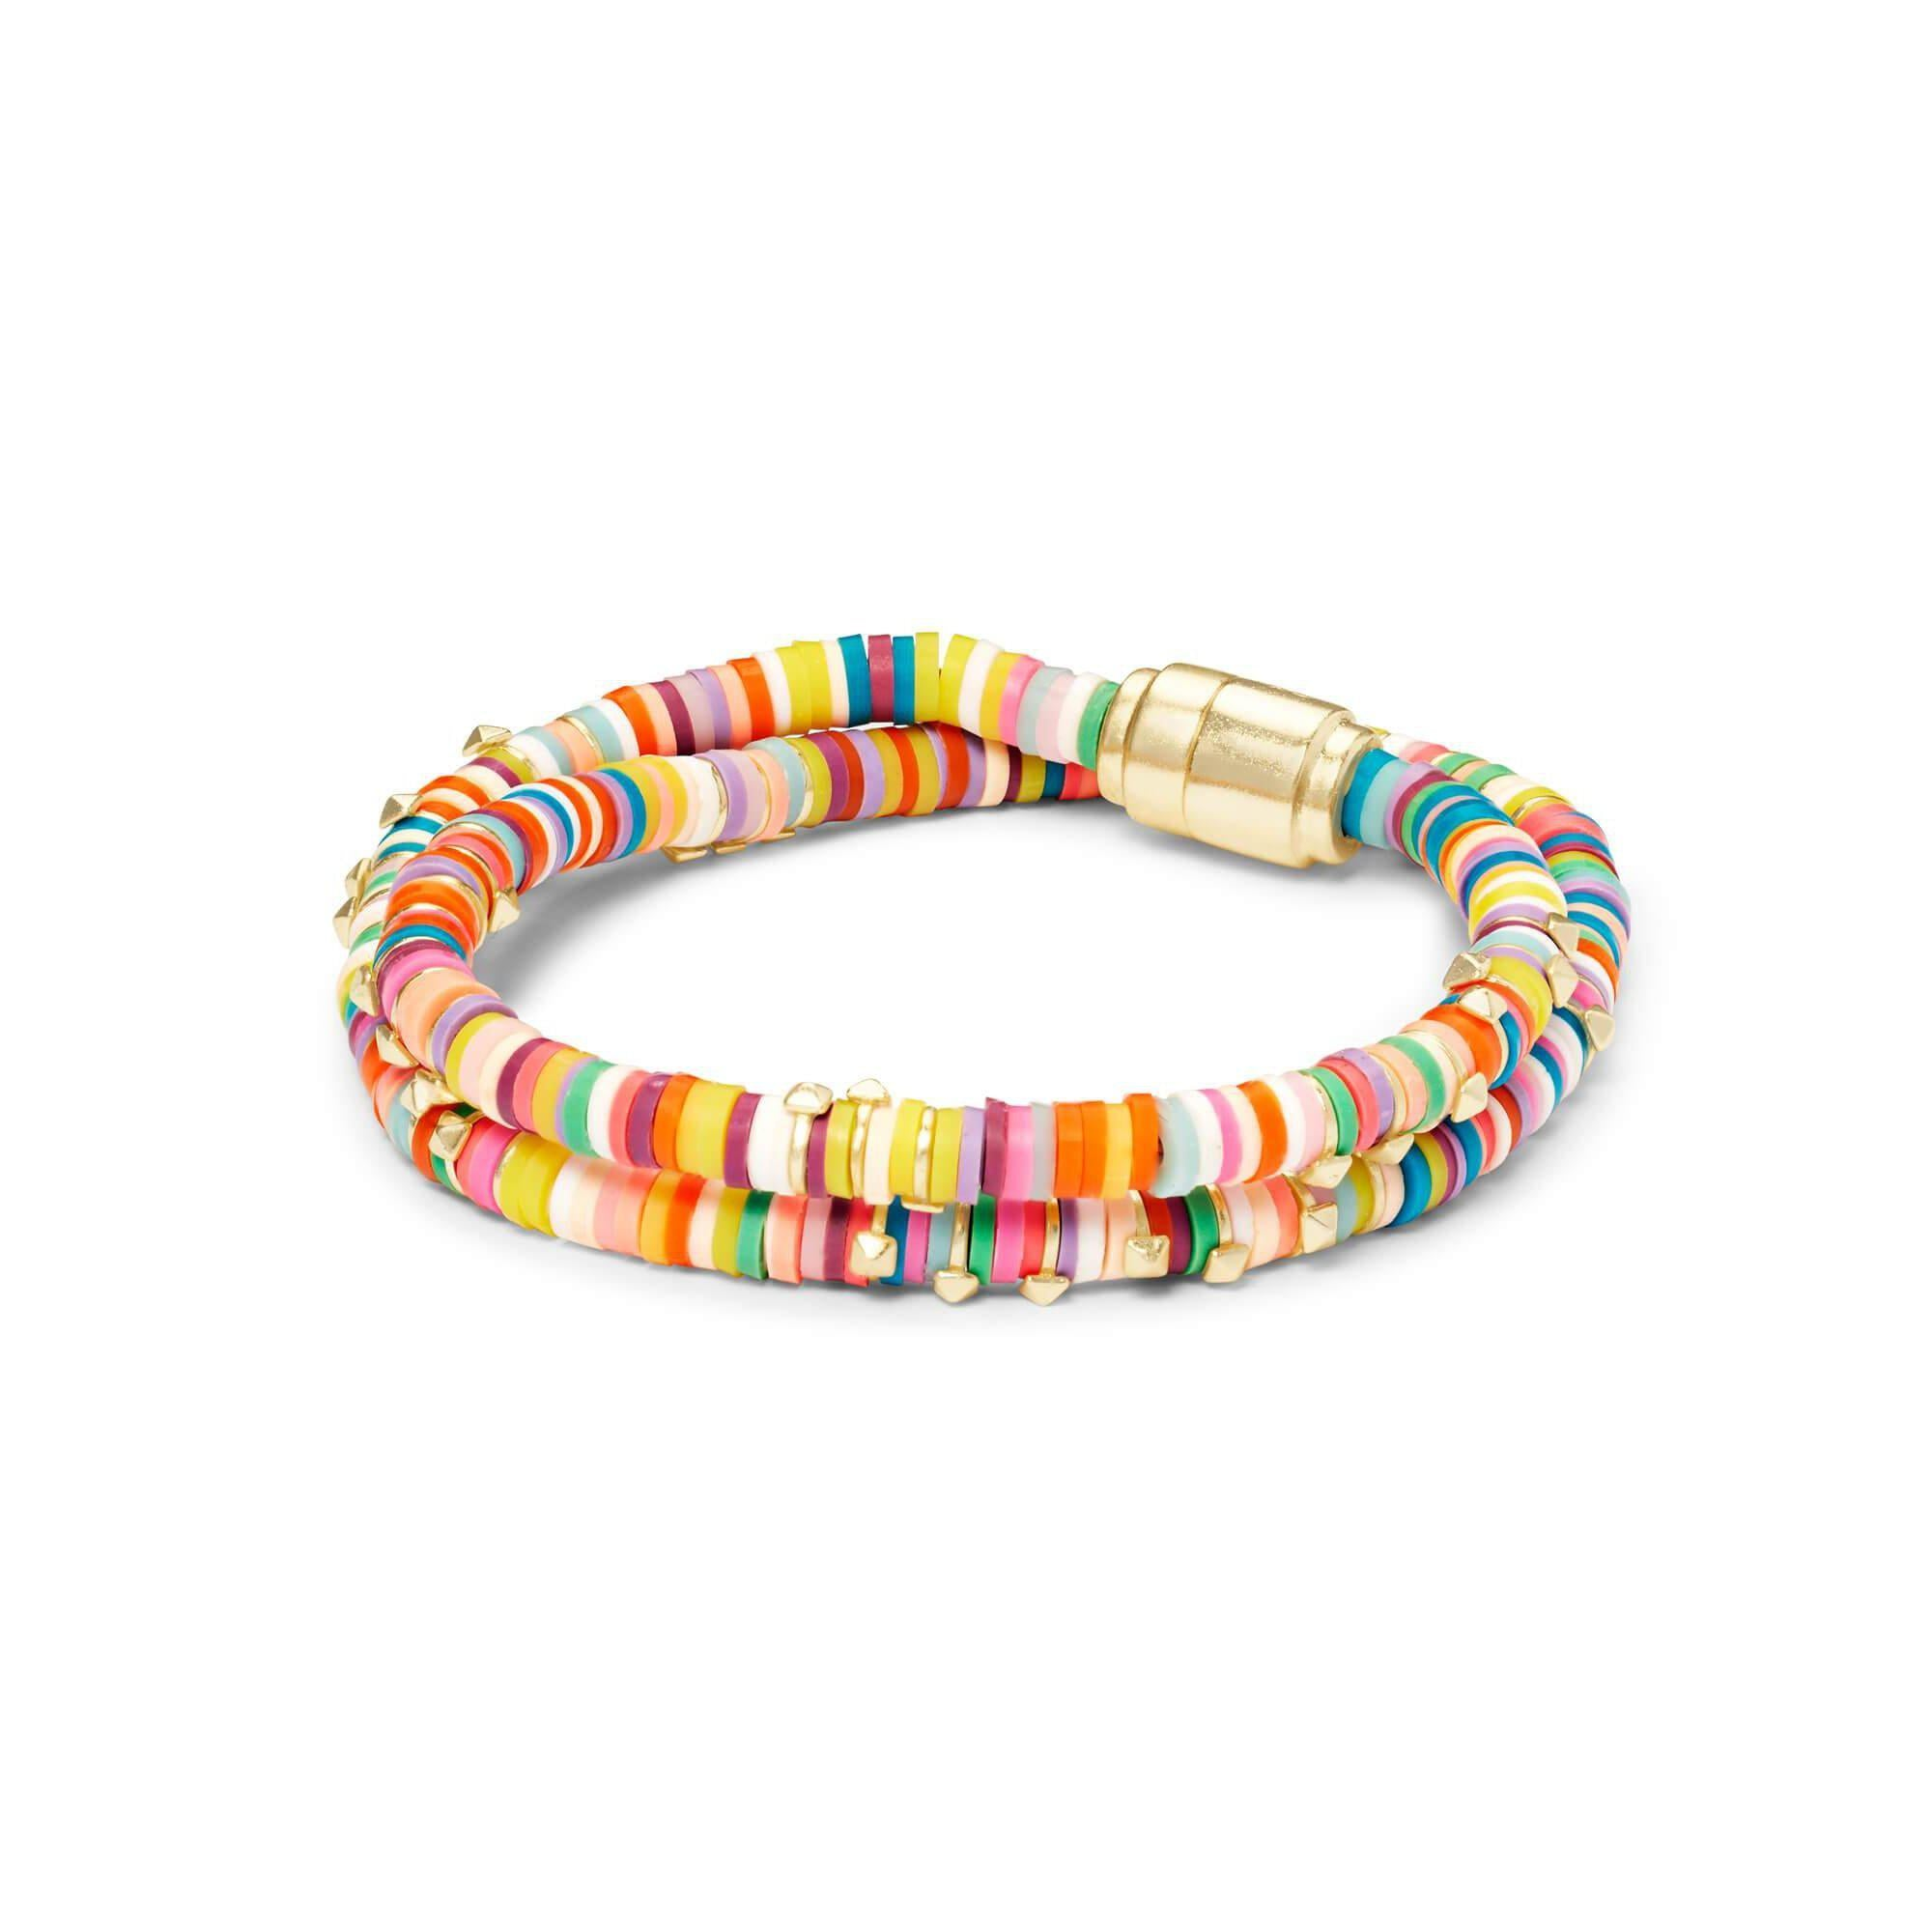 Reece Wrap Bracelet in Gold Multi Mix